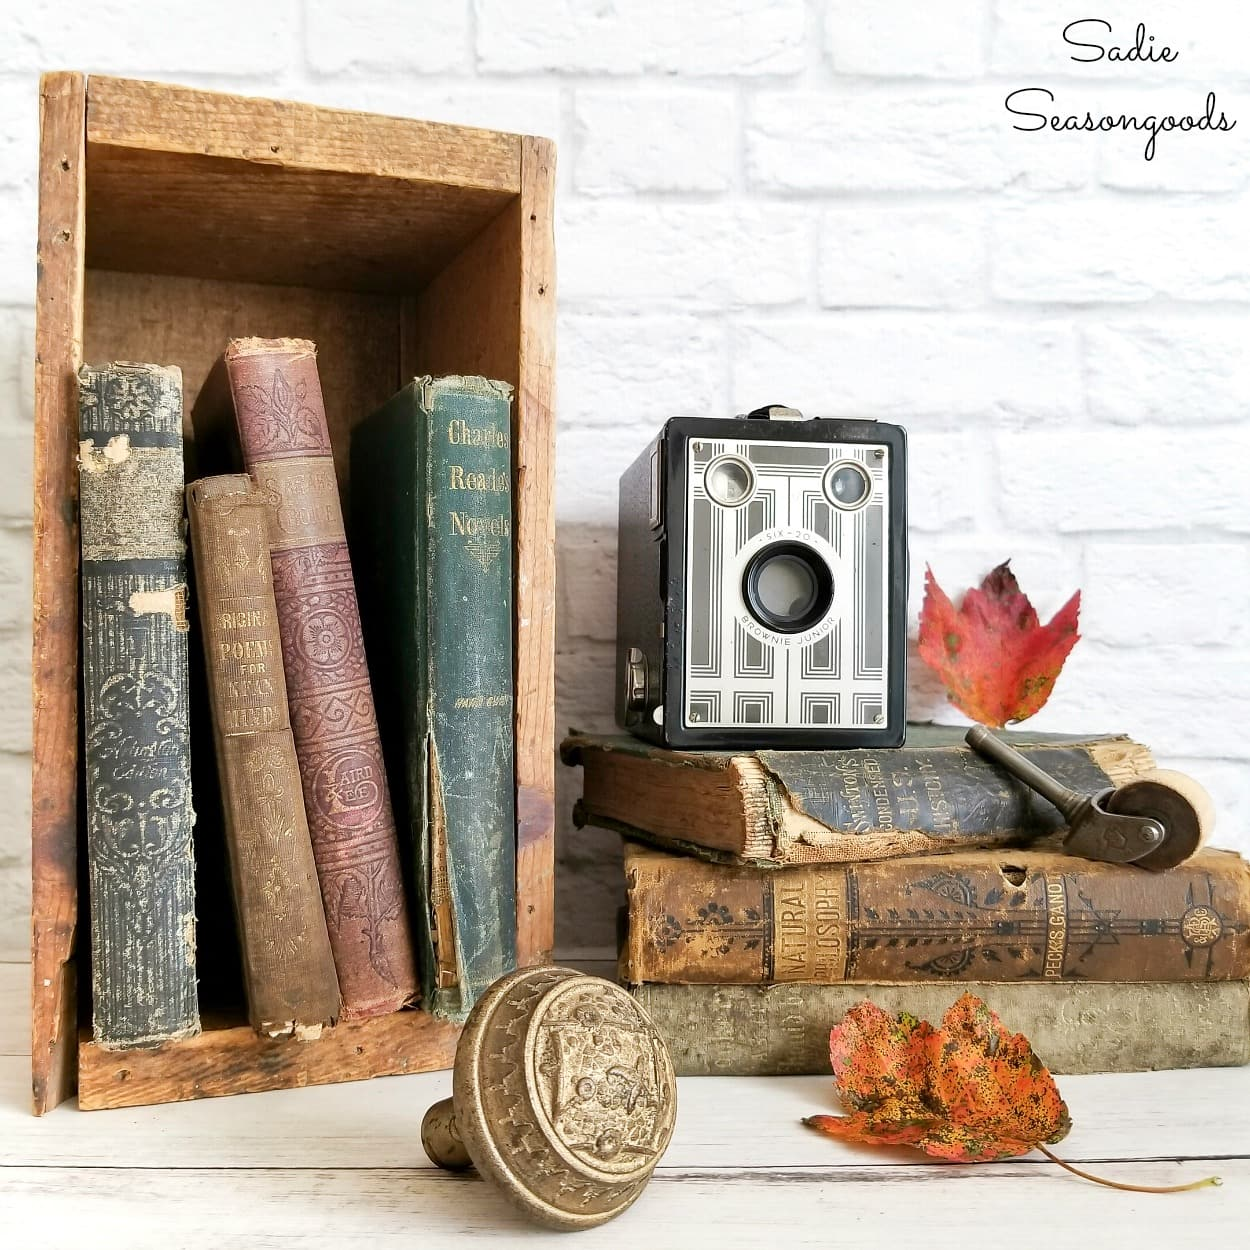 Decorating ideas for old books as vintage home decor